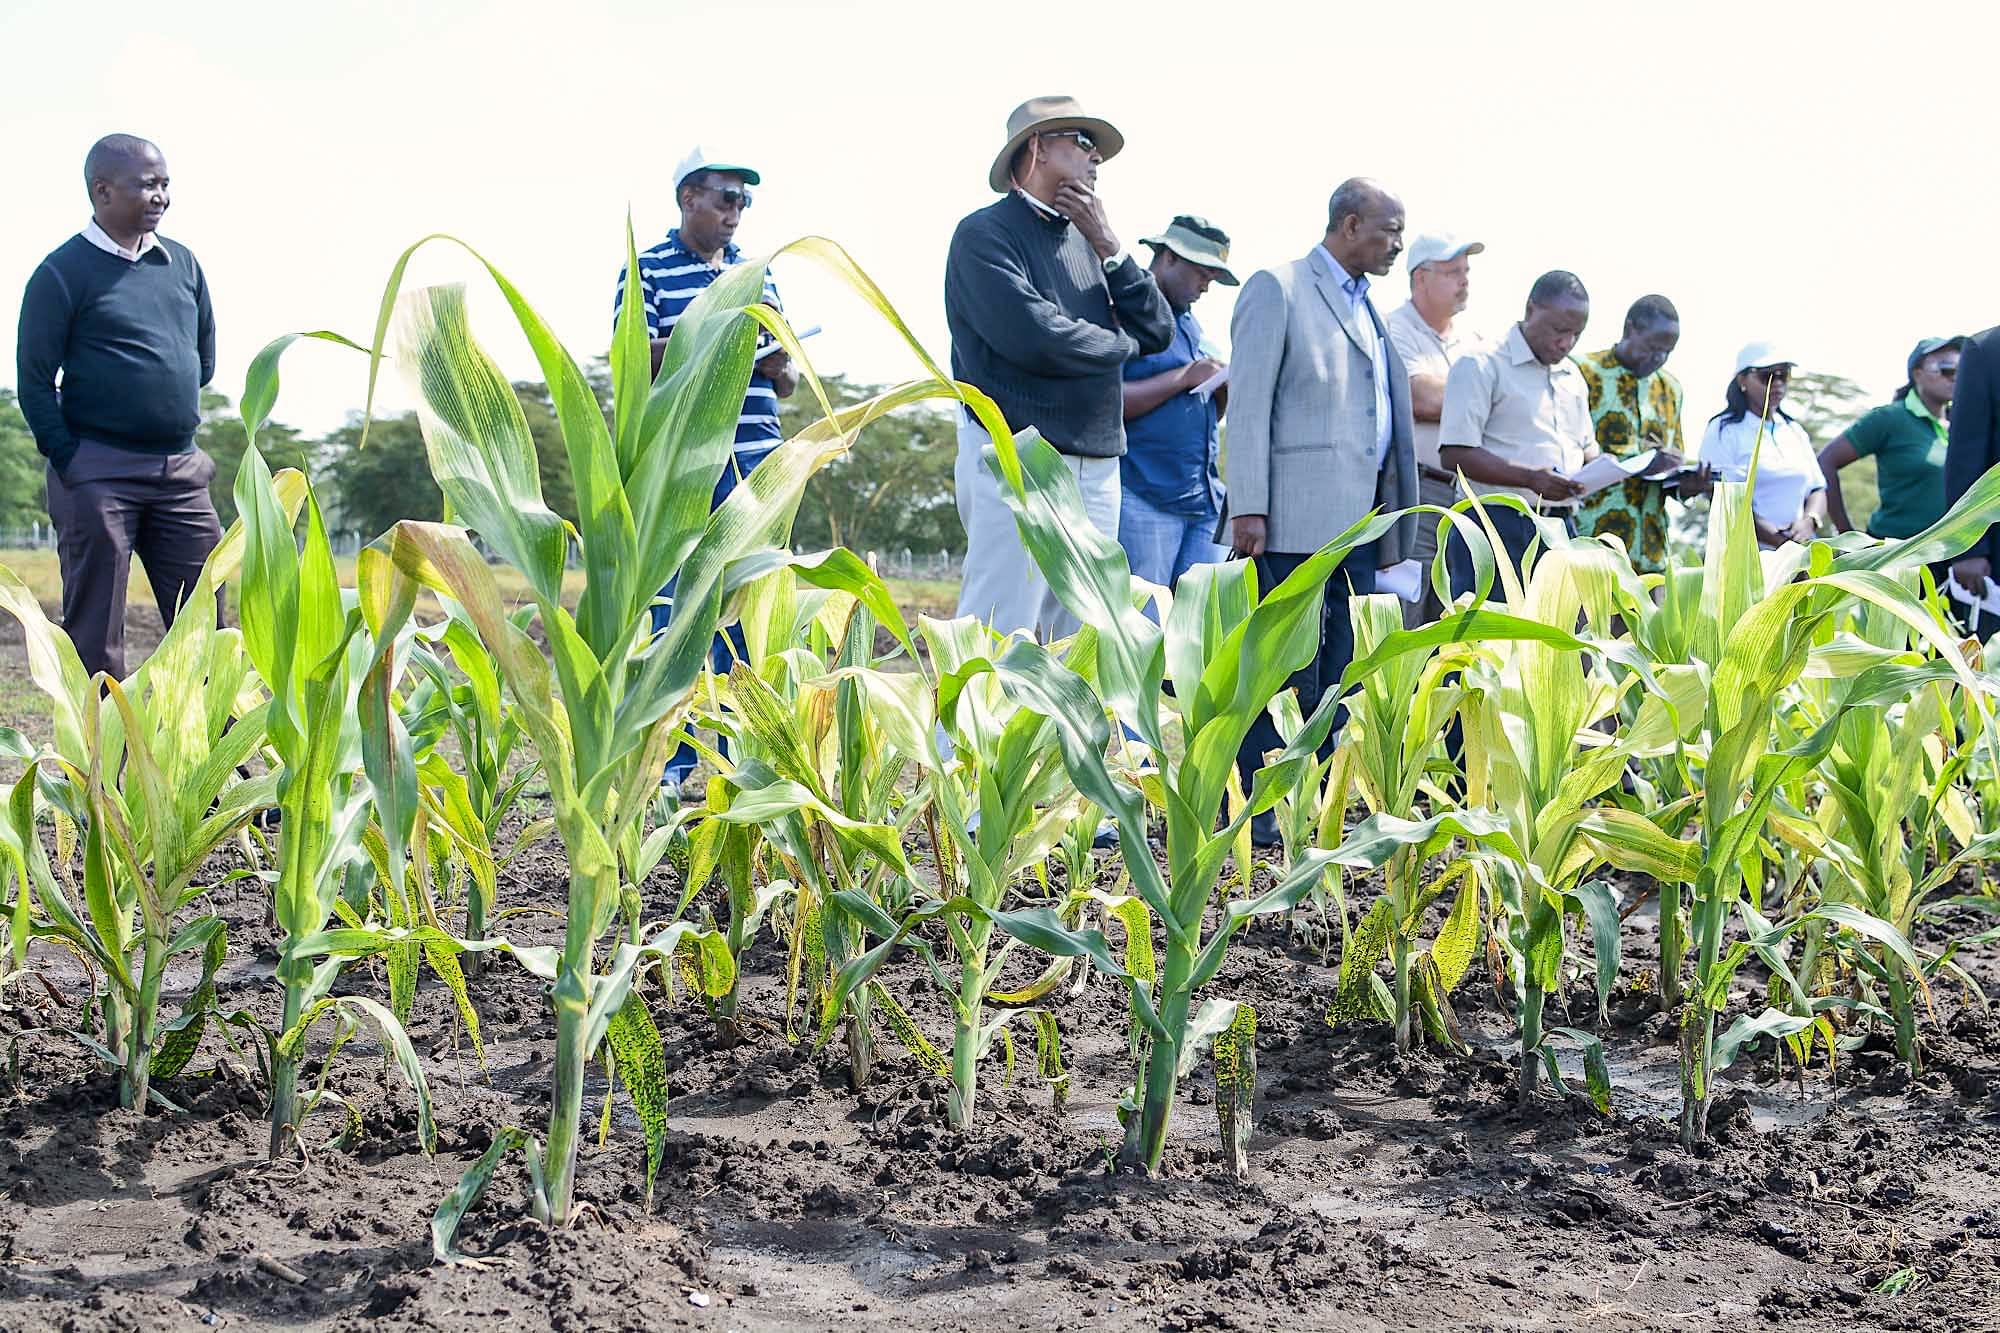 Researchers and visitors listen to explanations during a tour of infected maize fields at the MLN screening facility in Naivasha, Kenya. (Photo: CIMMYT)